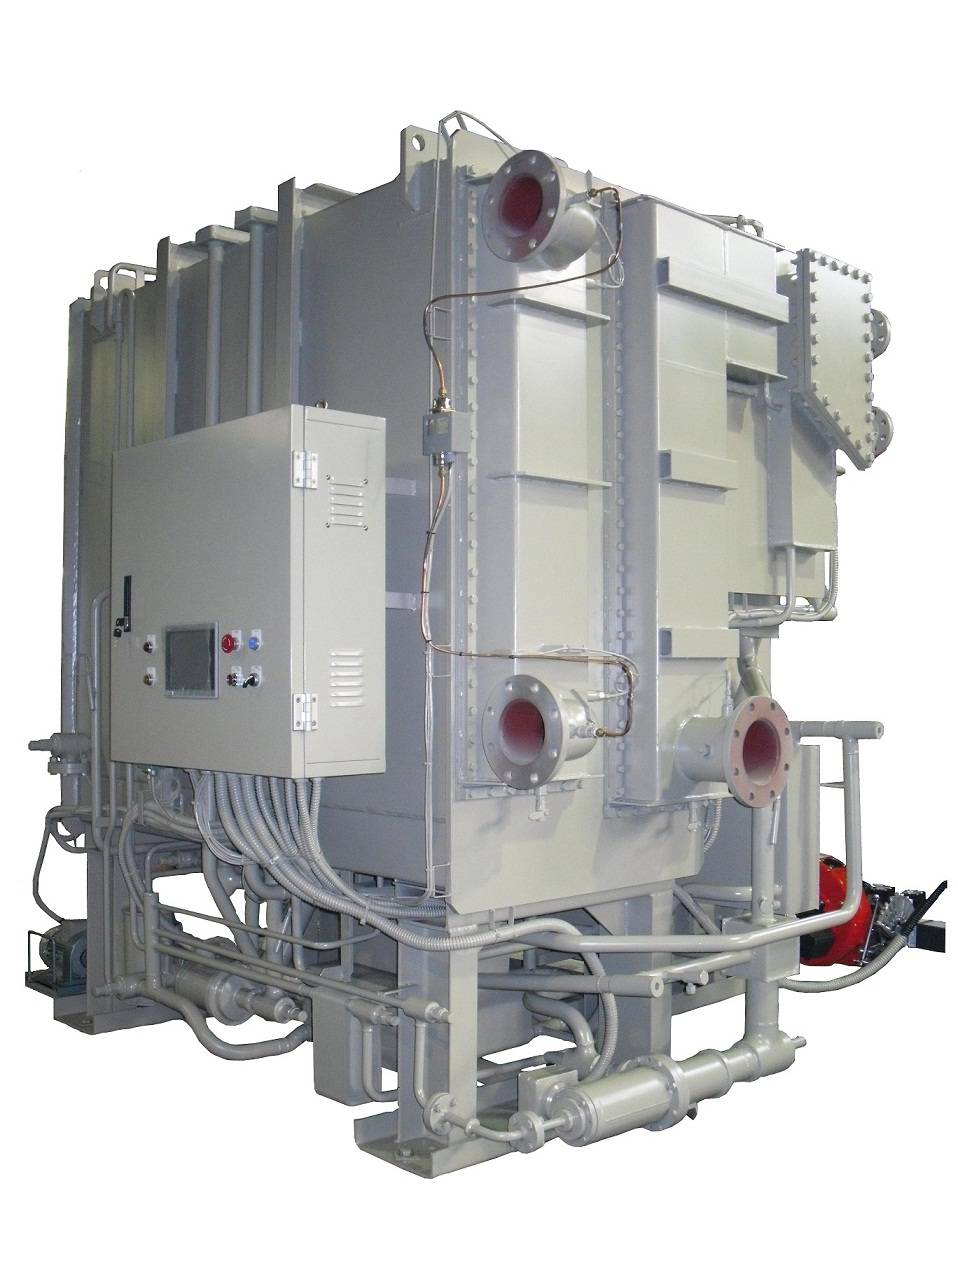 Hybrid Dual Absorption Chiller-Heater